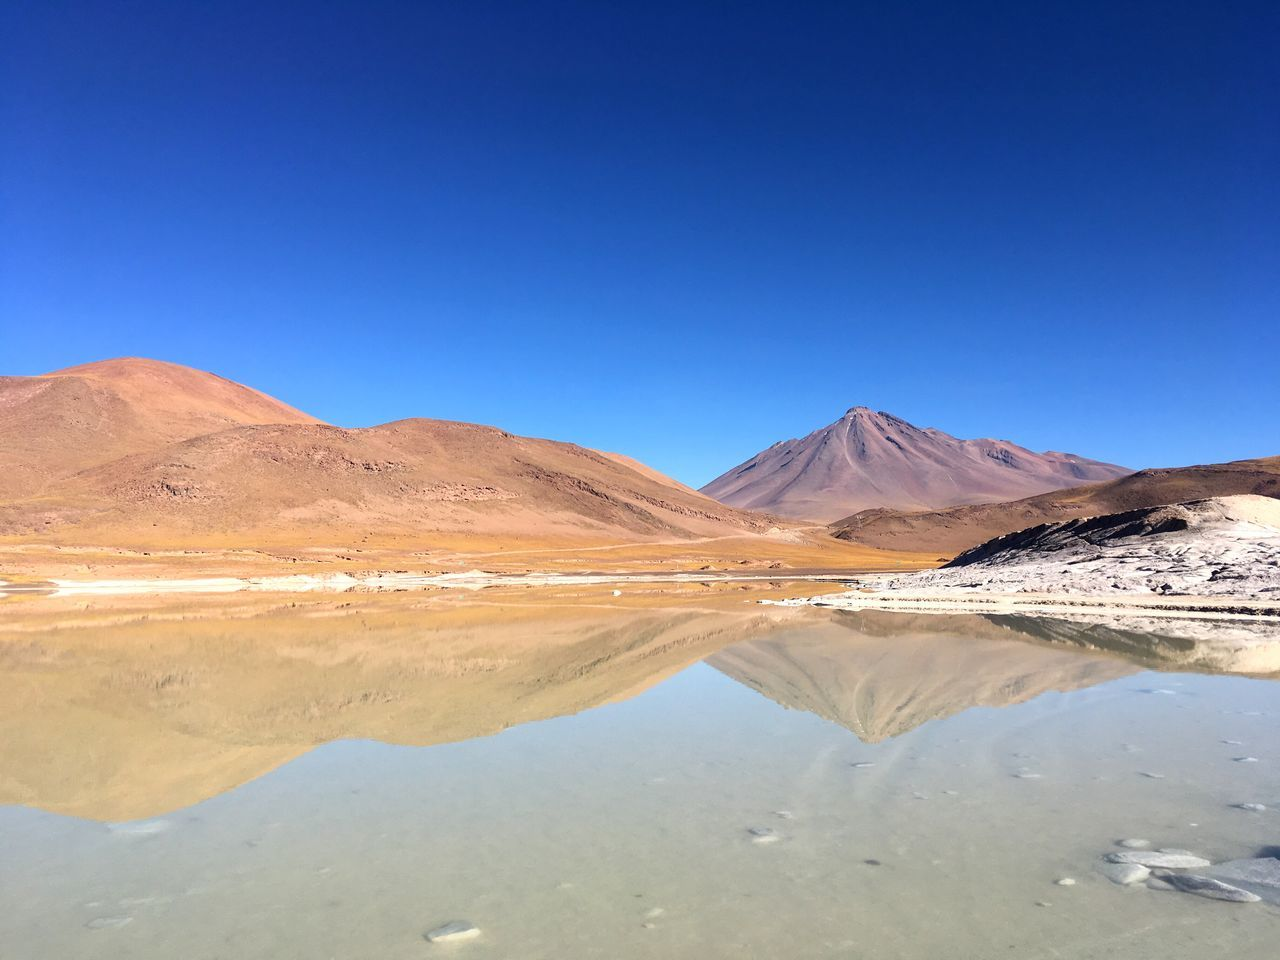 tranquil scene, nature, tranquility, scenics, arid climate, beauty in nature, blue, copy space, outdoors, desert, clear sky, no people, day, reflection, mountain, landscape, physical geography, water, salt - mineral, salt flat, salt basin, sky